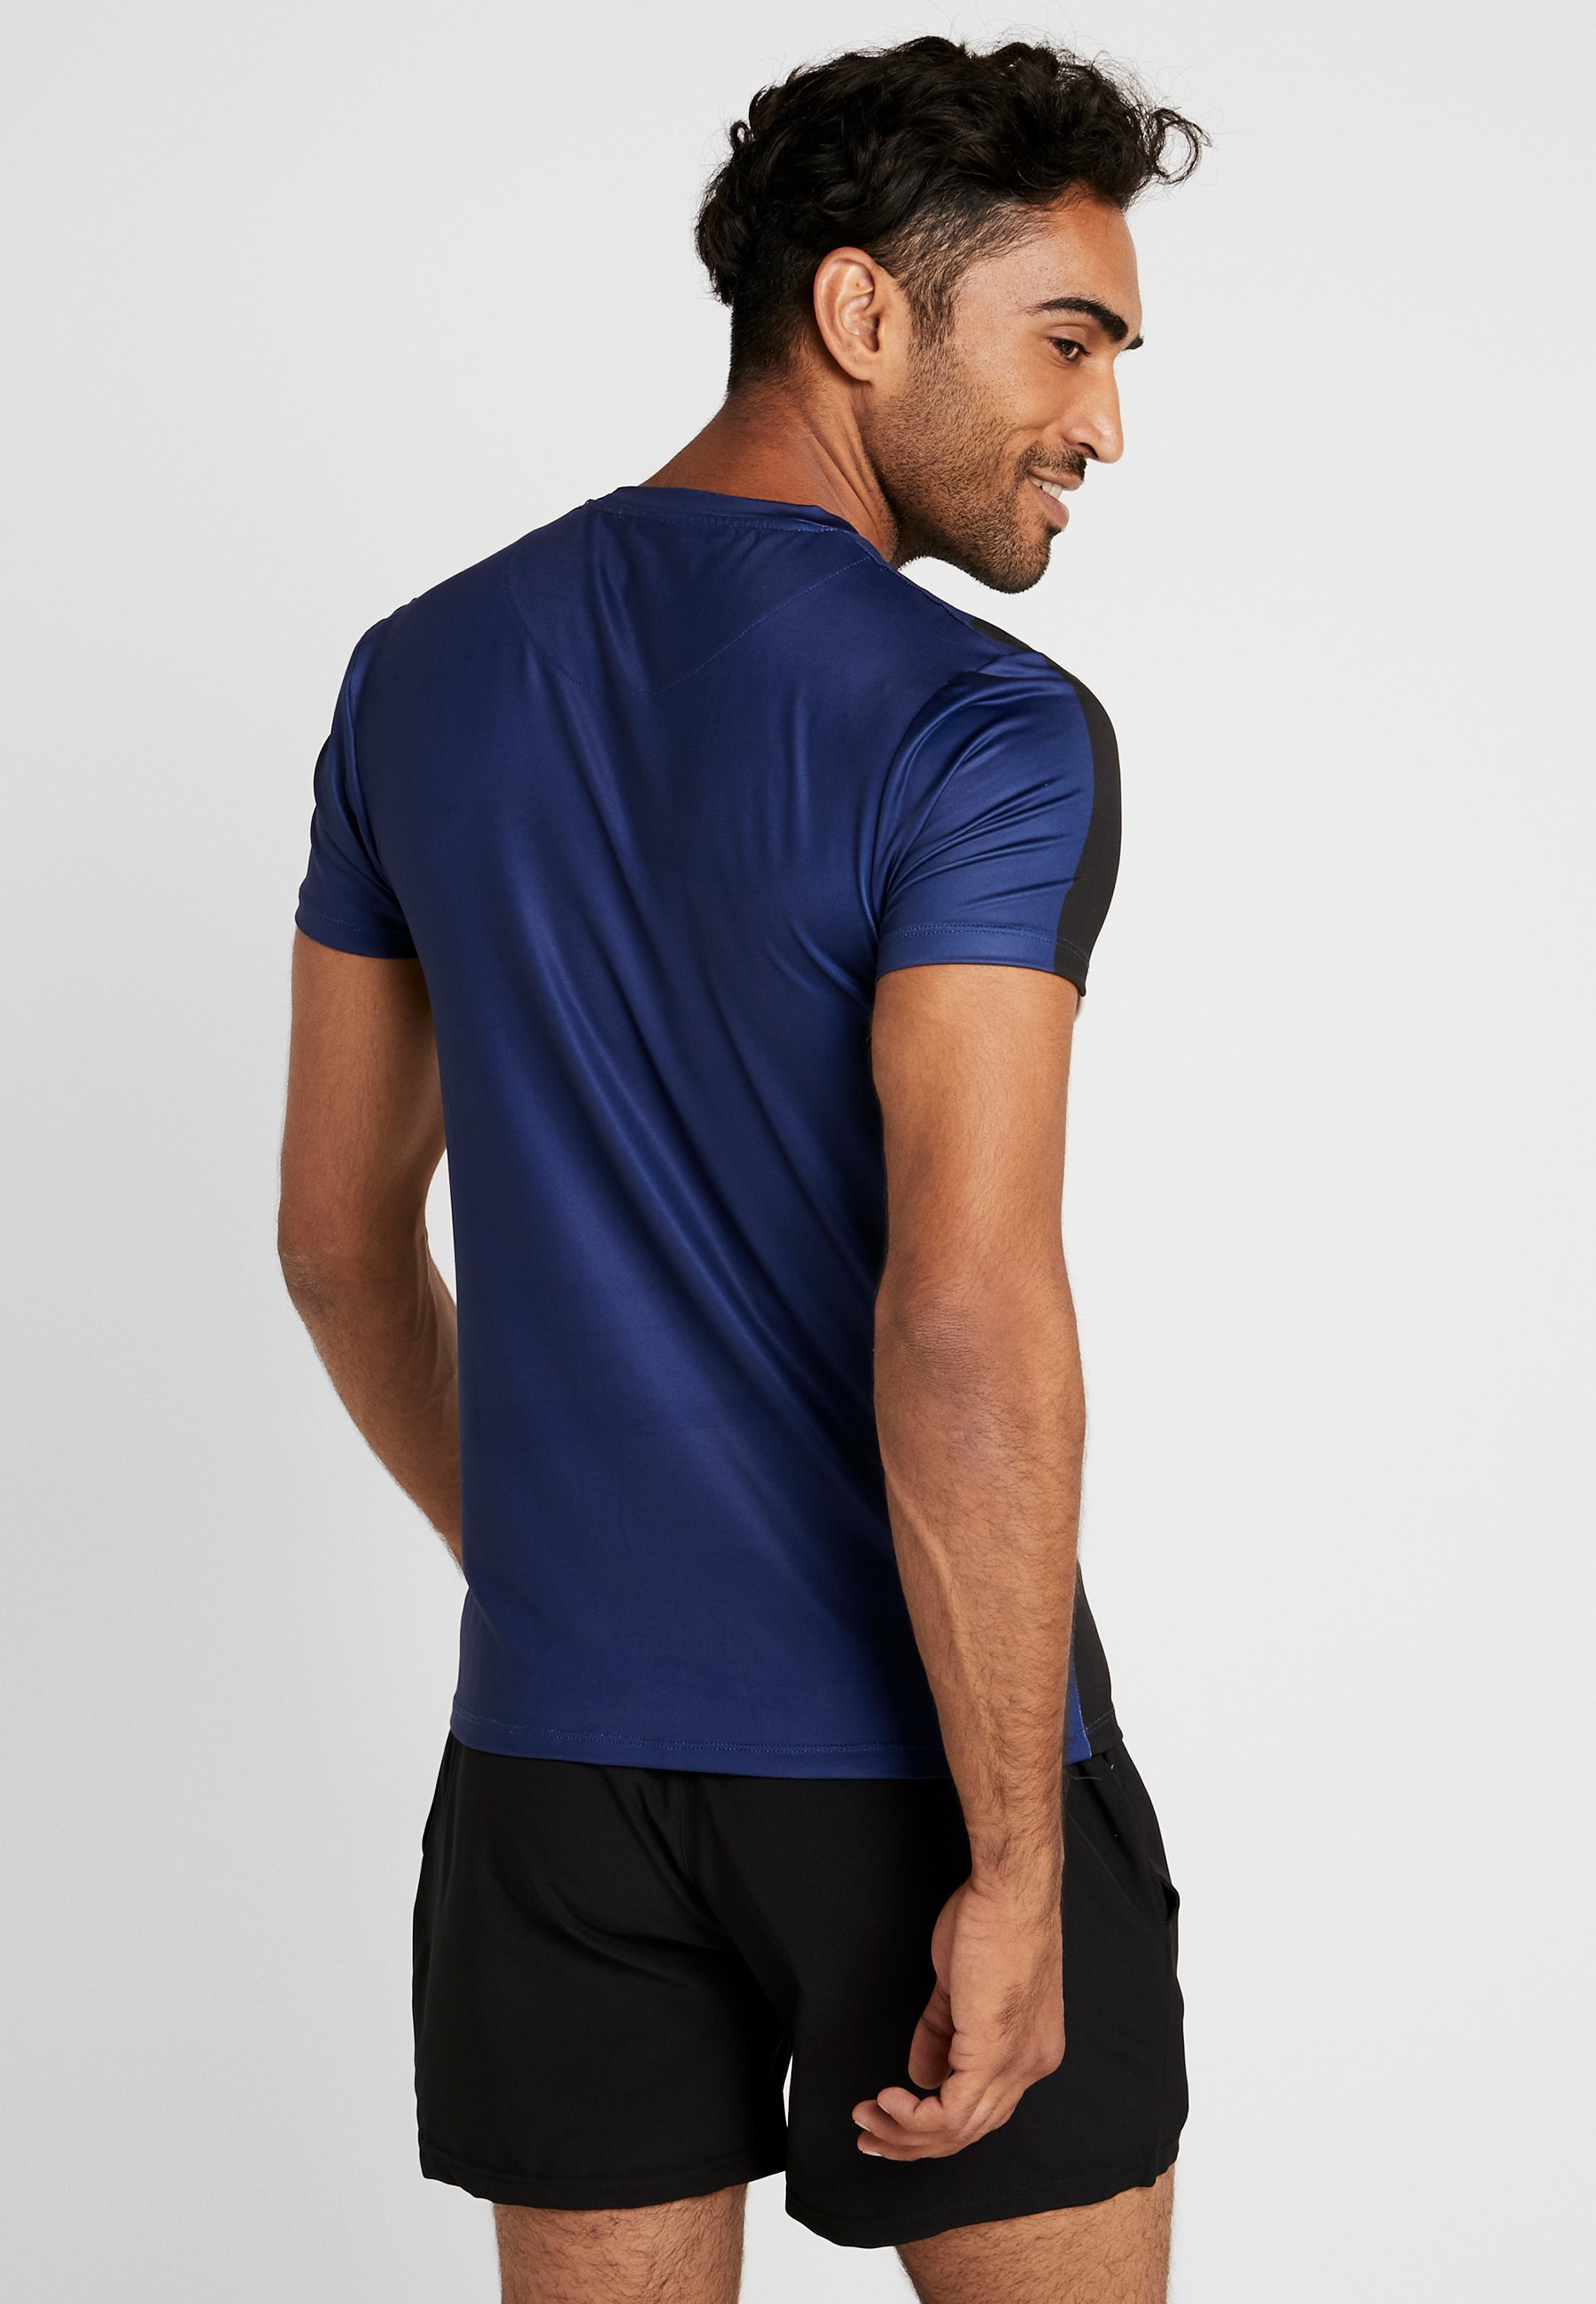 Exploded shirt Imprimé Blue TeeT Hiit Geo lKTF1Jc